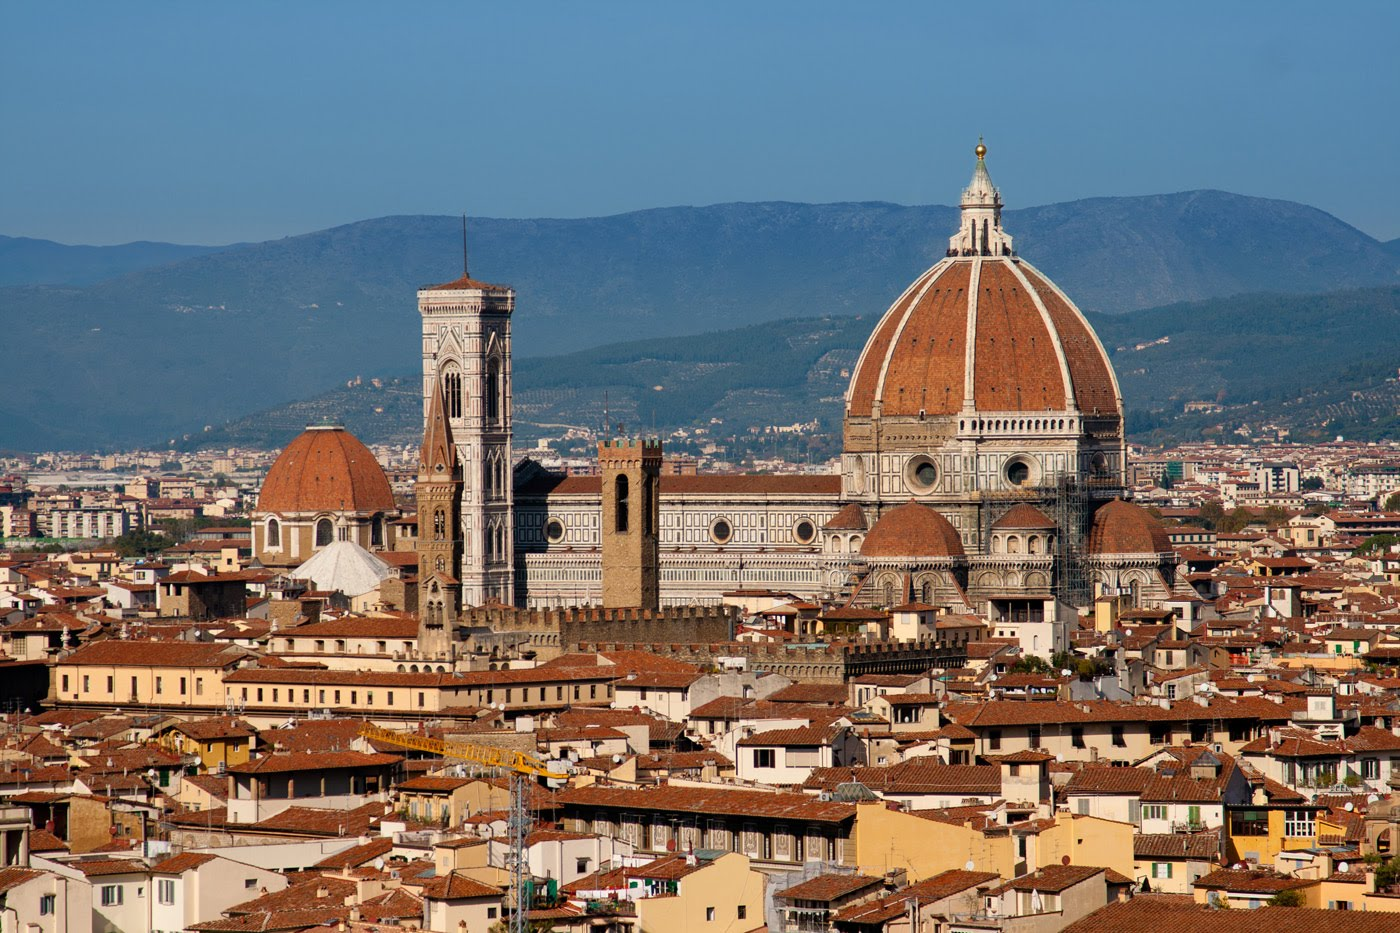 ... with my family jetting off to the historic city of Florence, Italy